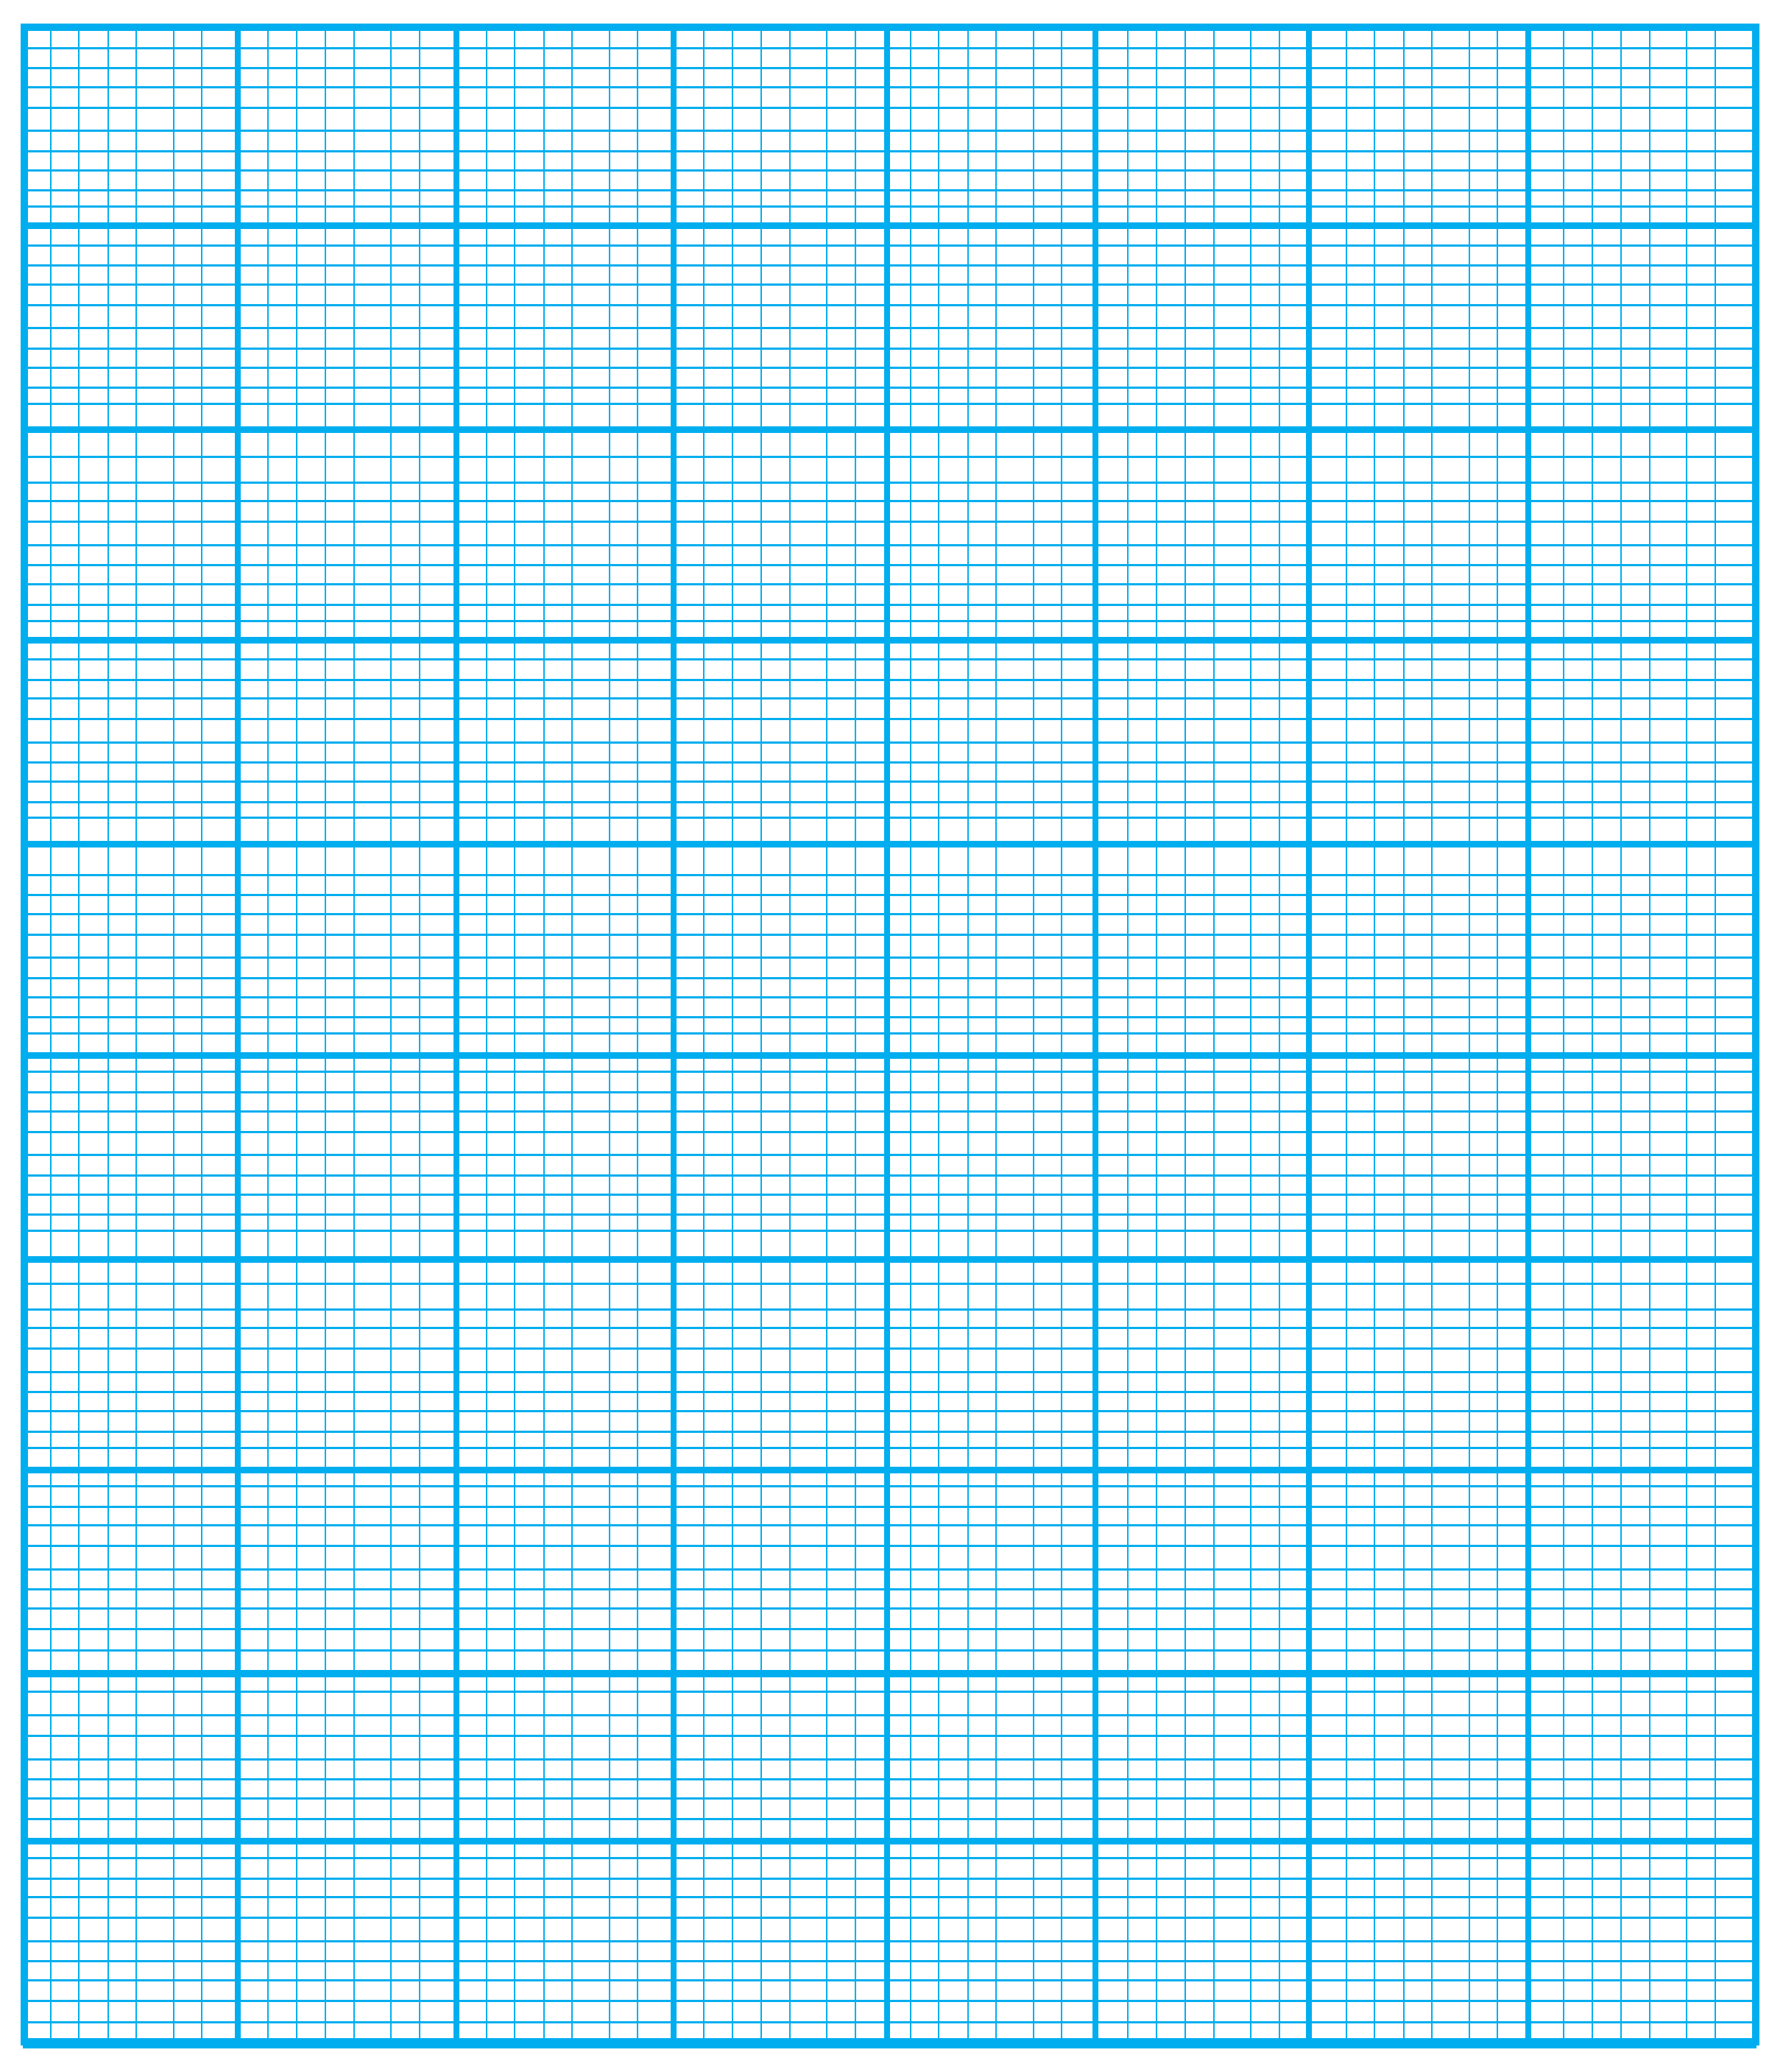 picture regarding Printable Knitting Graph Paper titled Totally free Printable Grid Paper Template Cost-free Graph Paper Printable